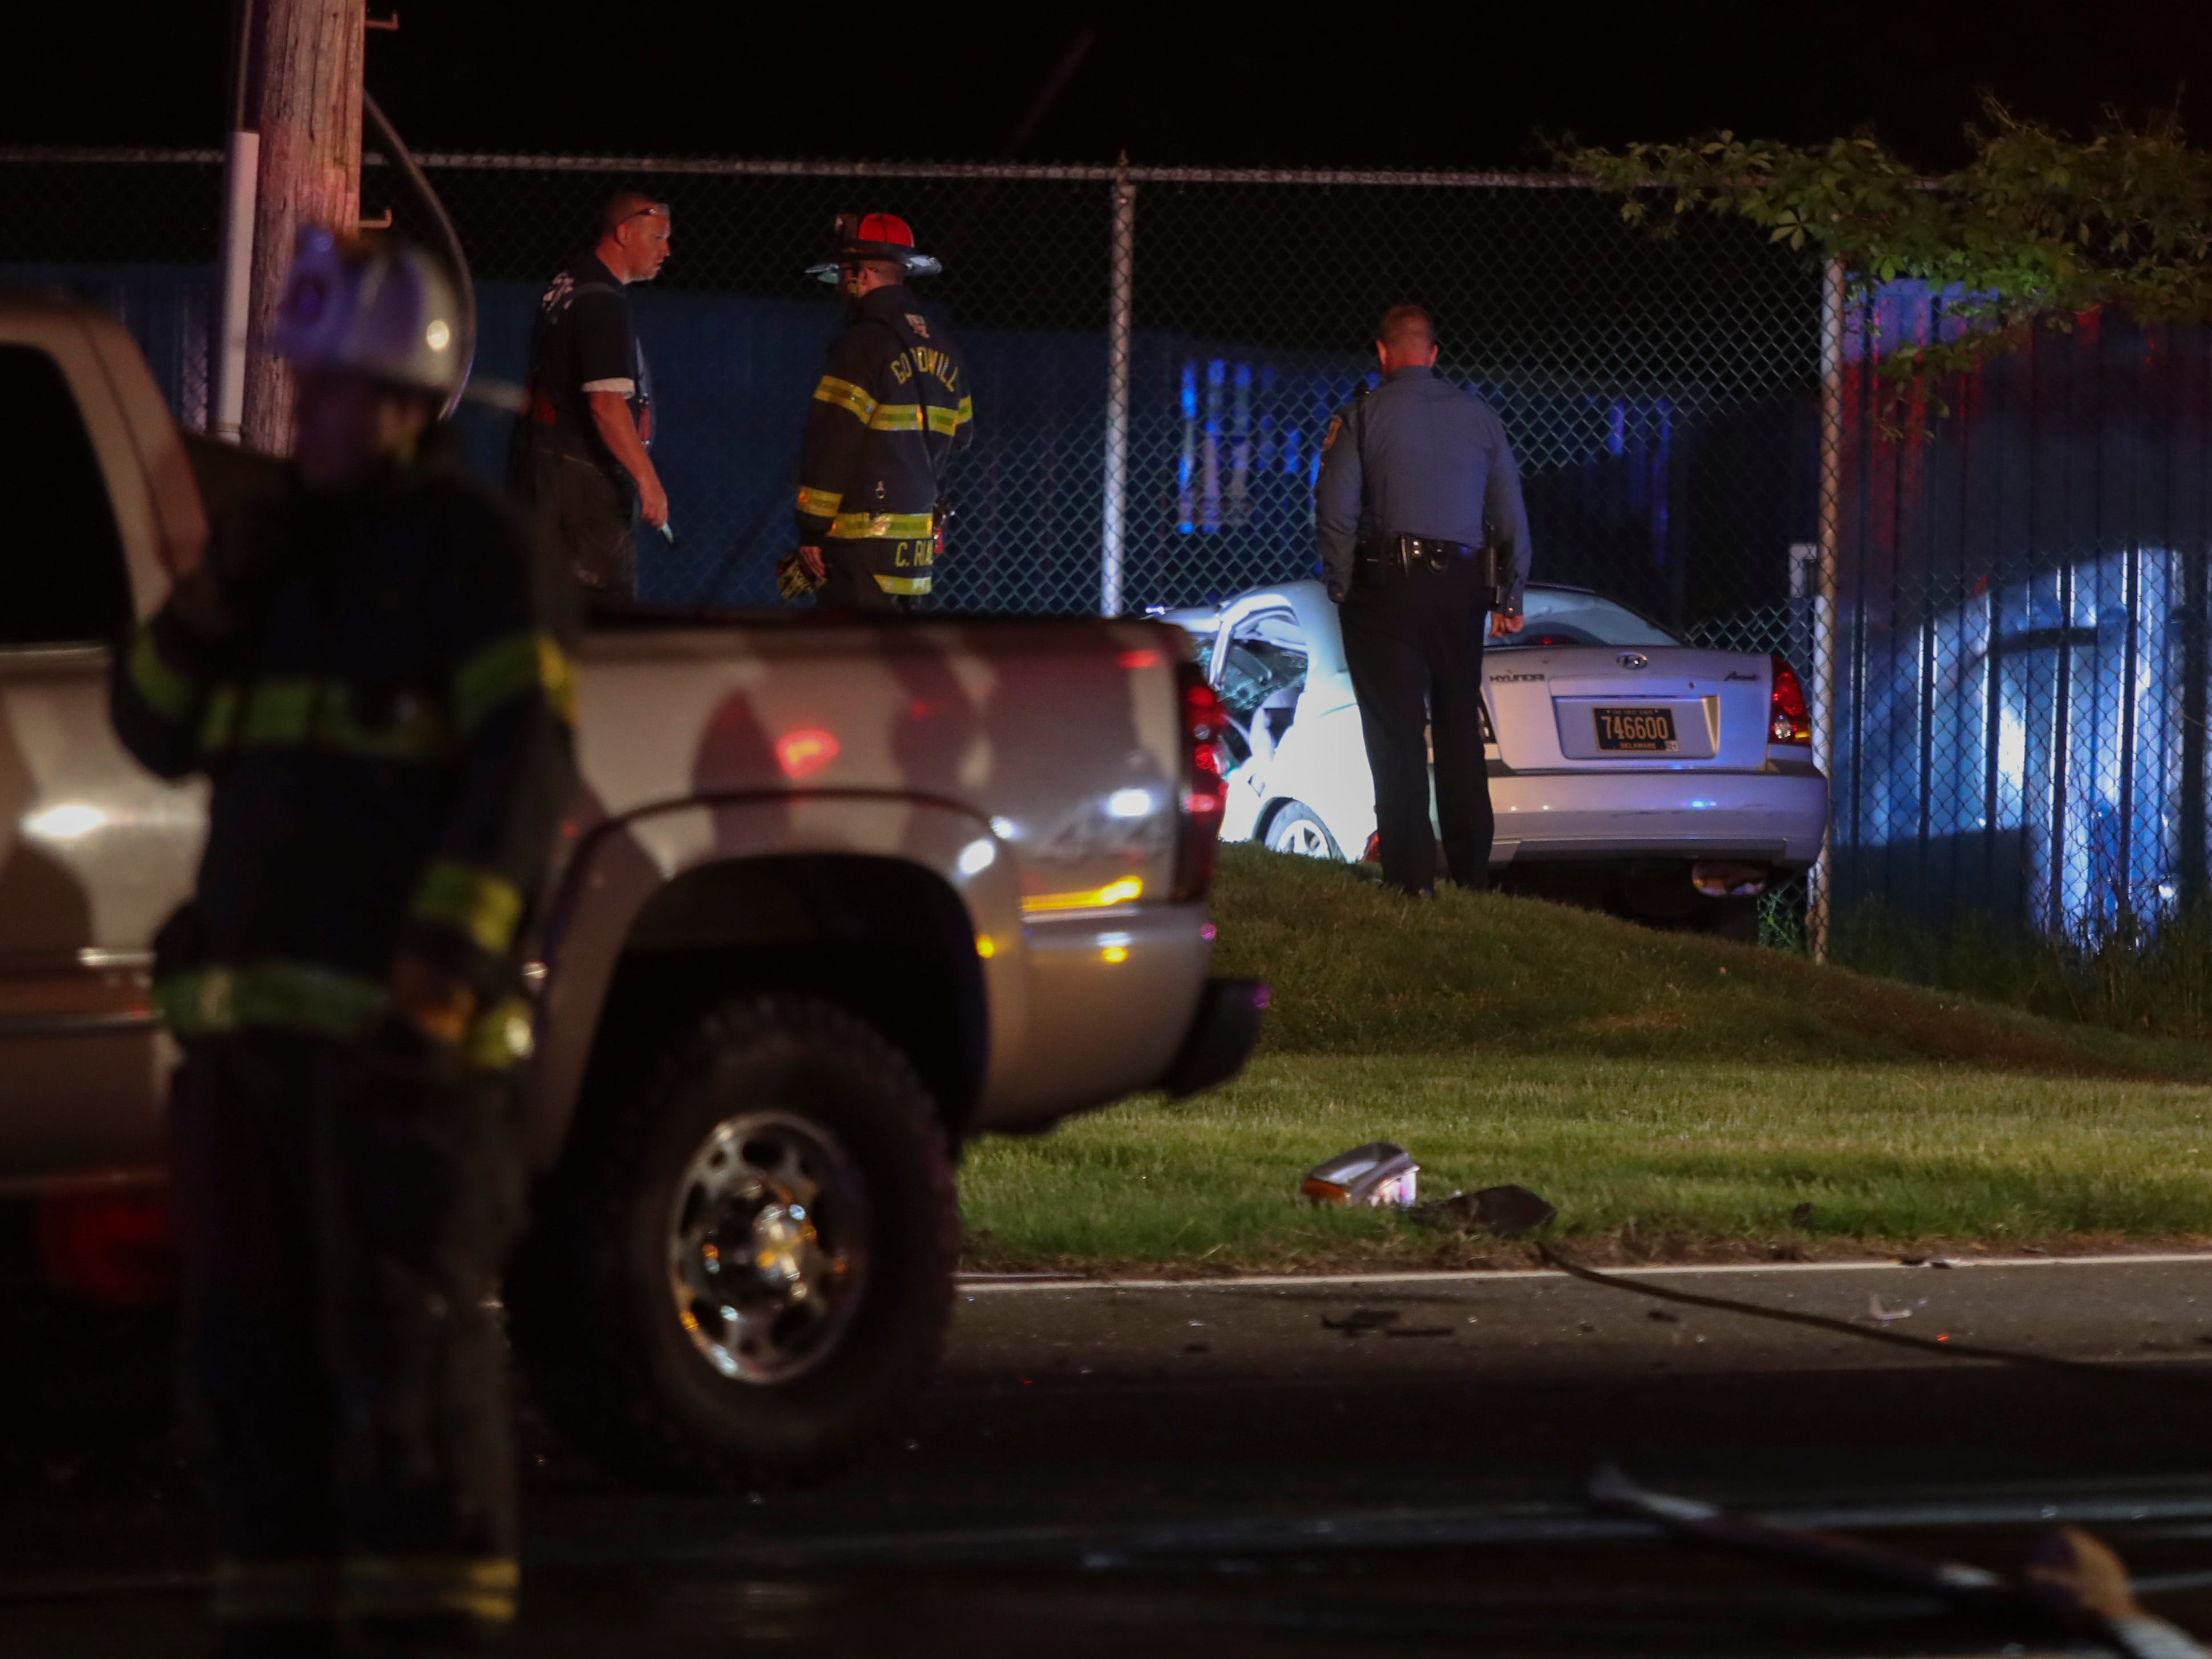 Emergency personnel work at the scene of a fatal two-car accident on River Road at Grantham Lane, reported at 9:11 p.m. Tuesday.